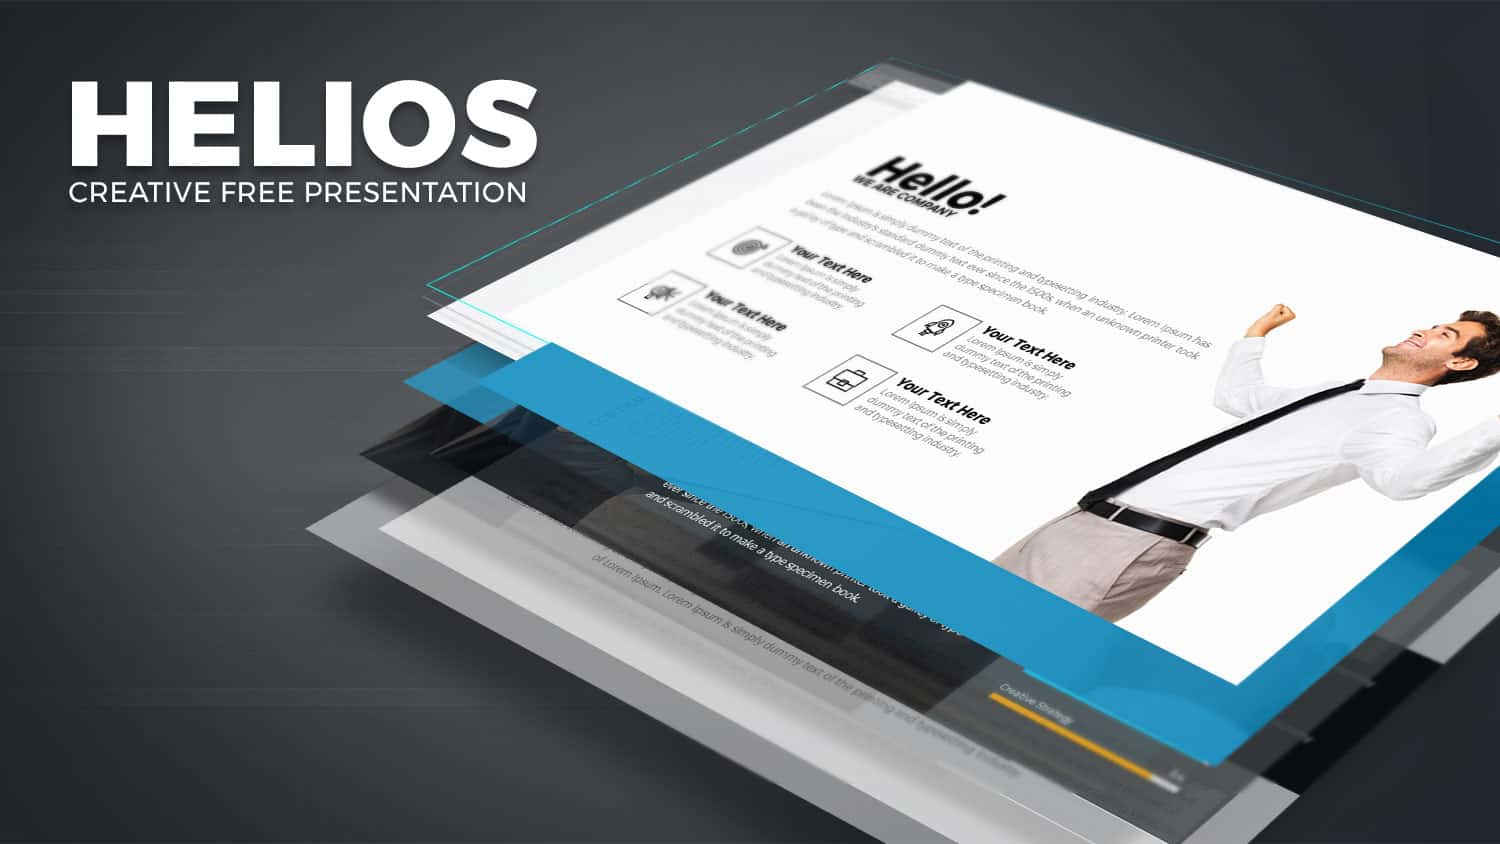 Helios free powerpoint template download slidebazaar helios free powerpoint template toneelgroepblik Images